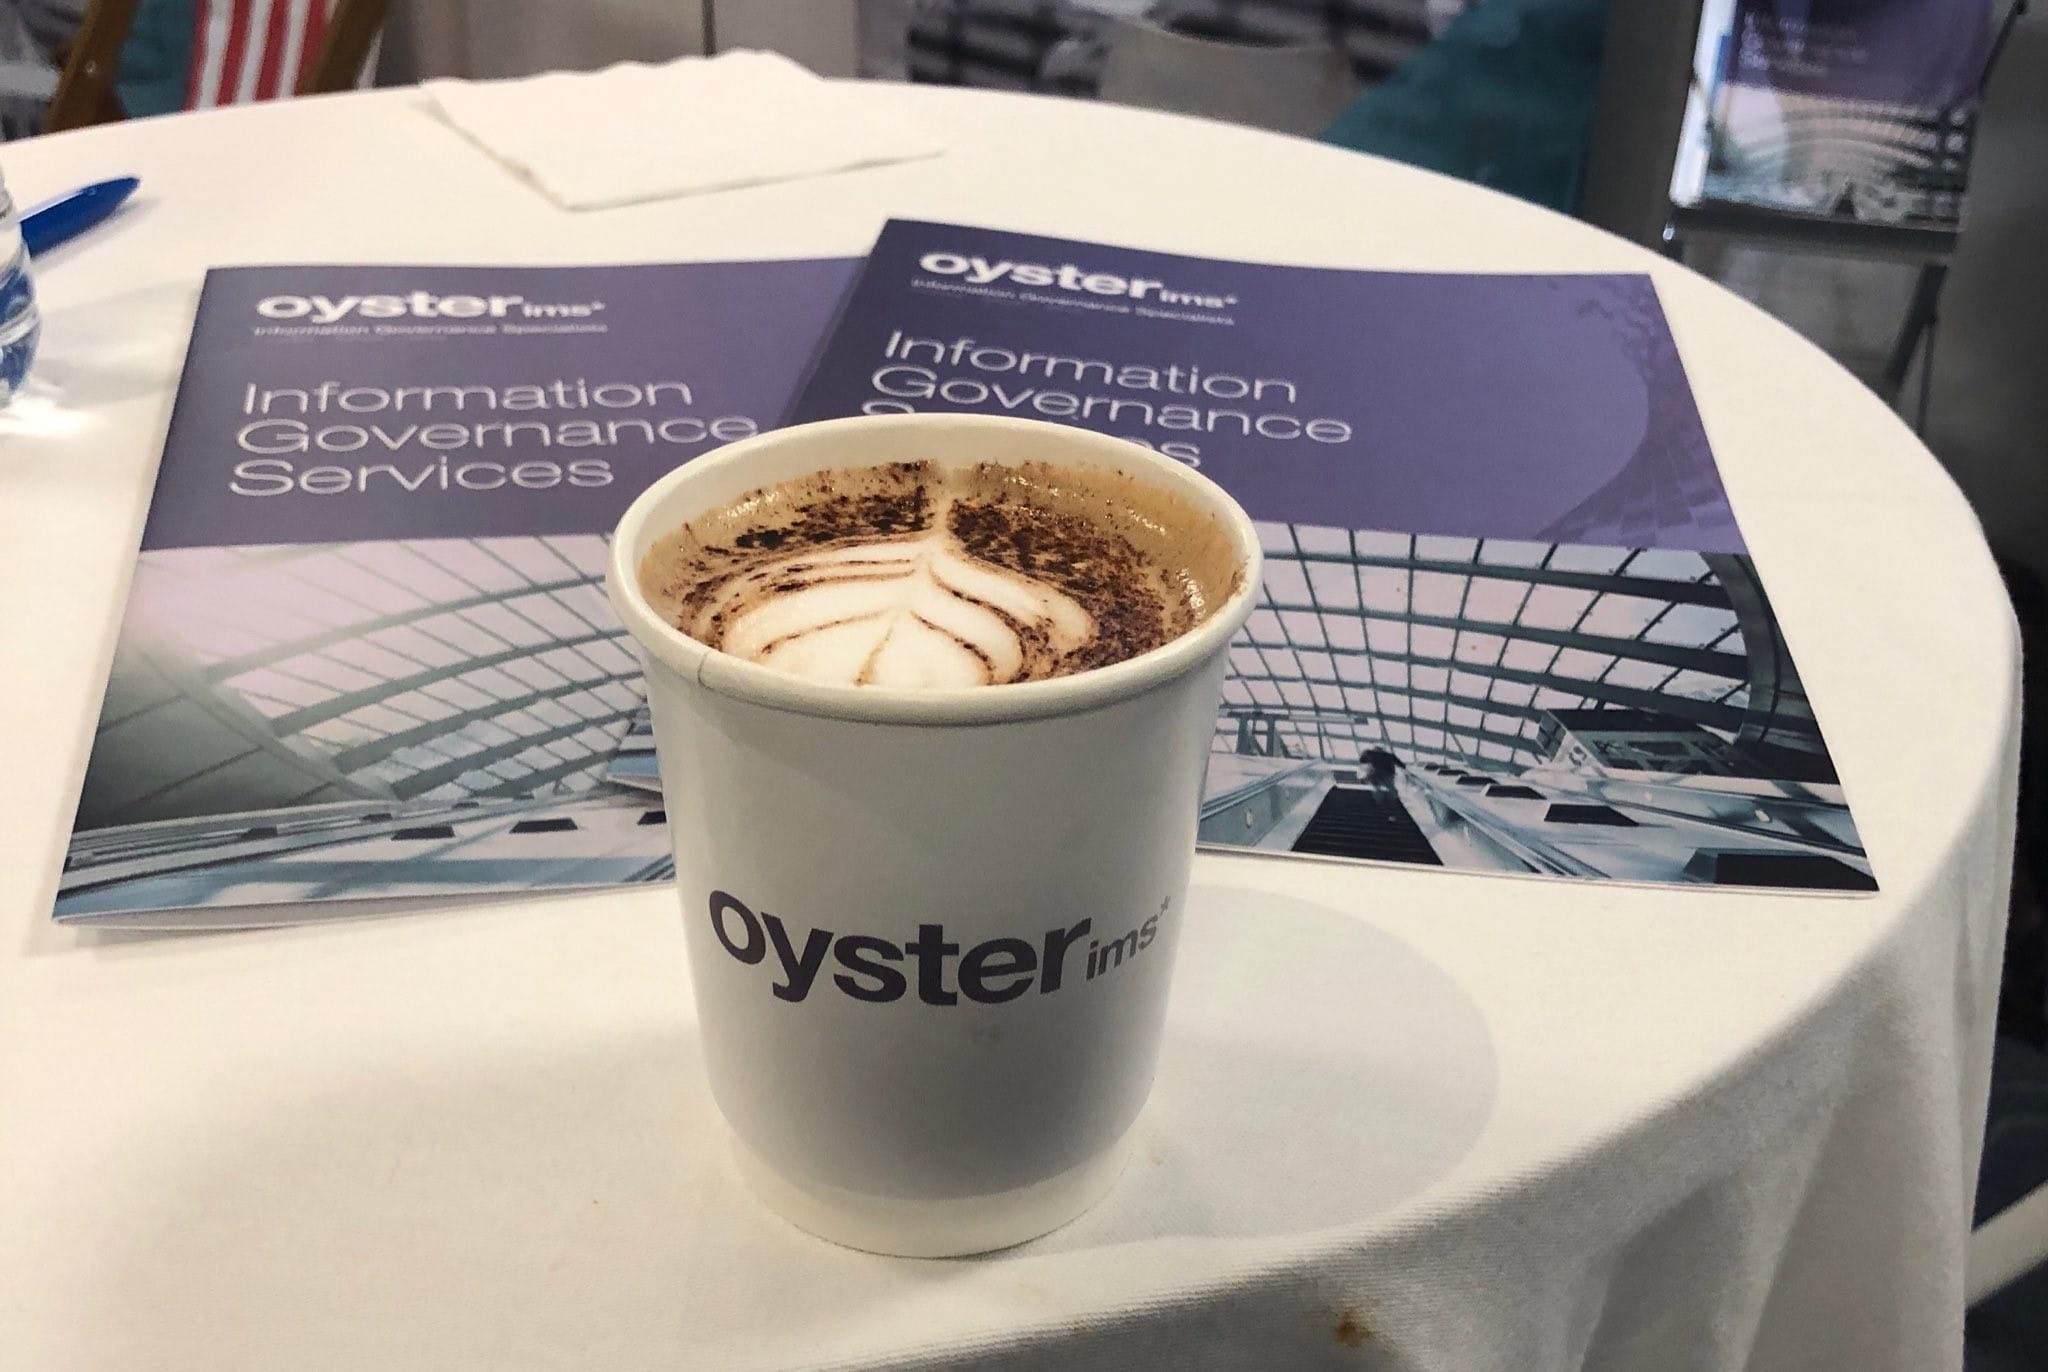 Oyster IMS - IRMS - Coffee